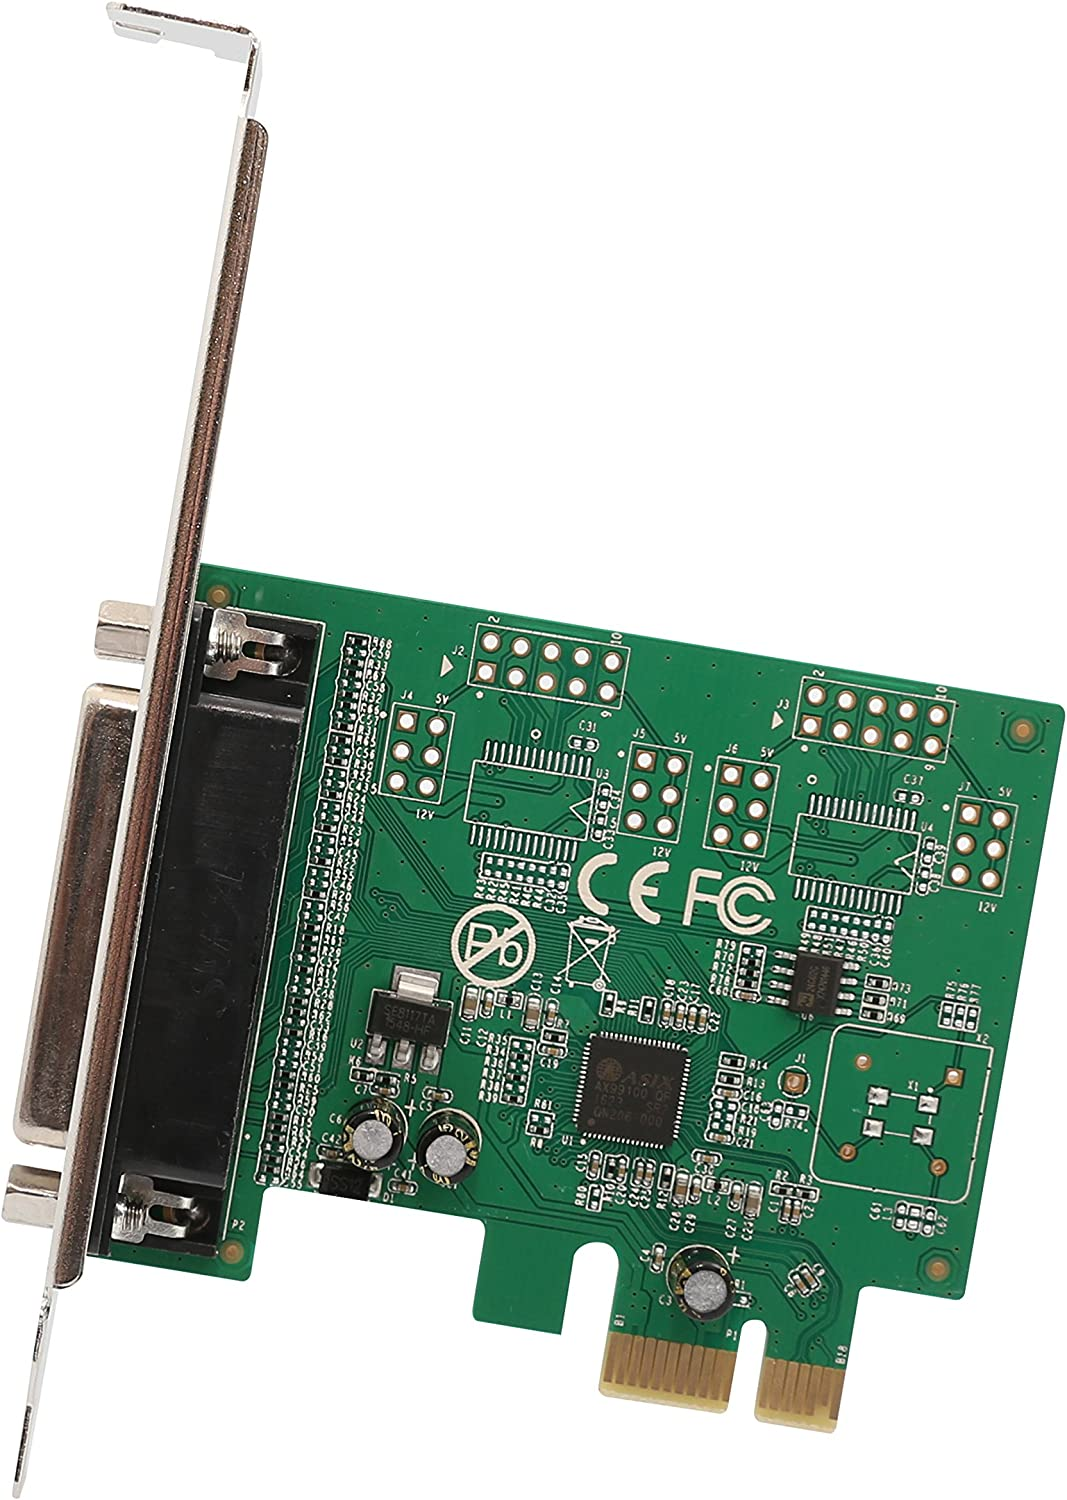 Syba 1 Port Parallel DB25 LPT Low Max 80% OFF wholesale Bracket Printer PCIe with x1